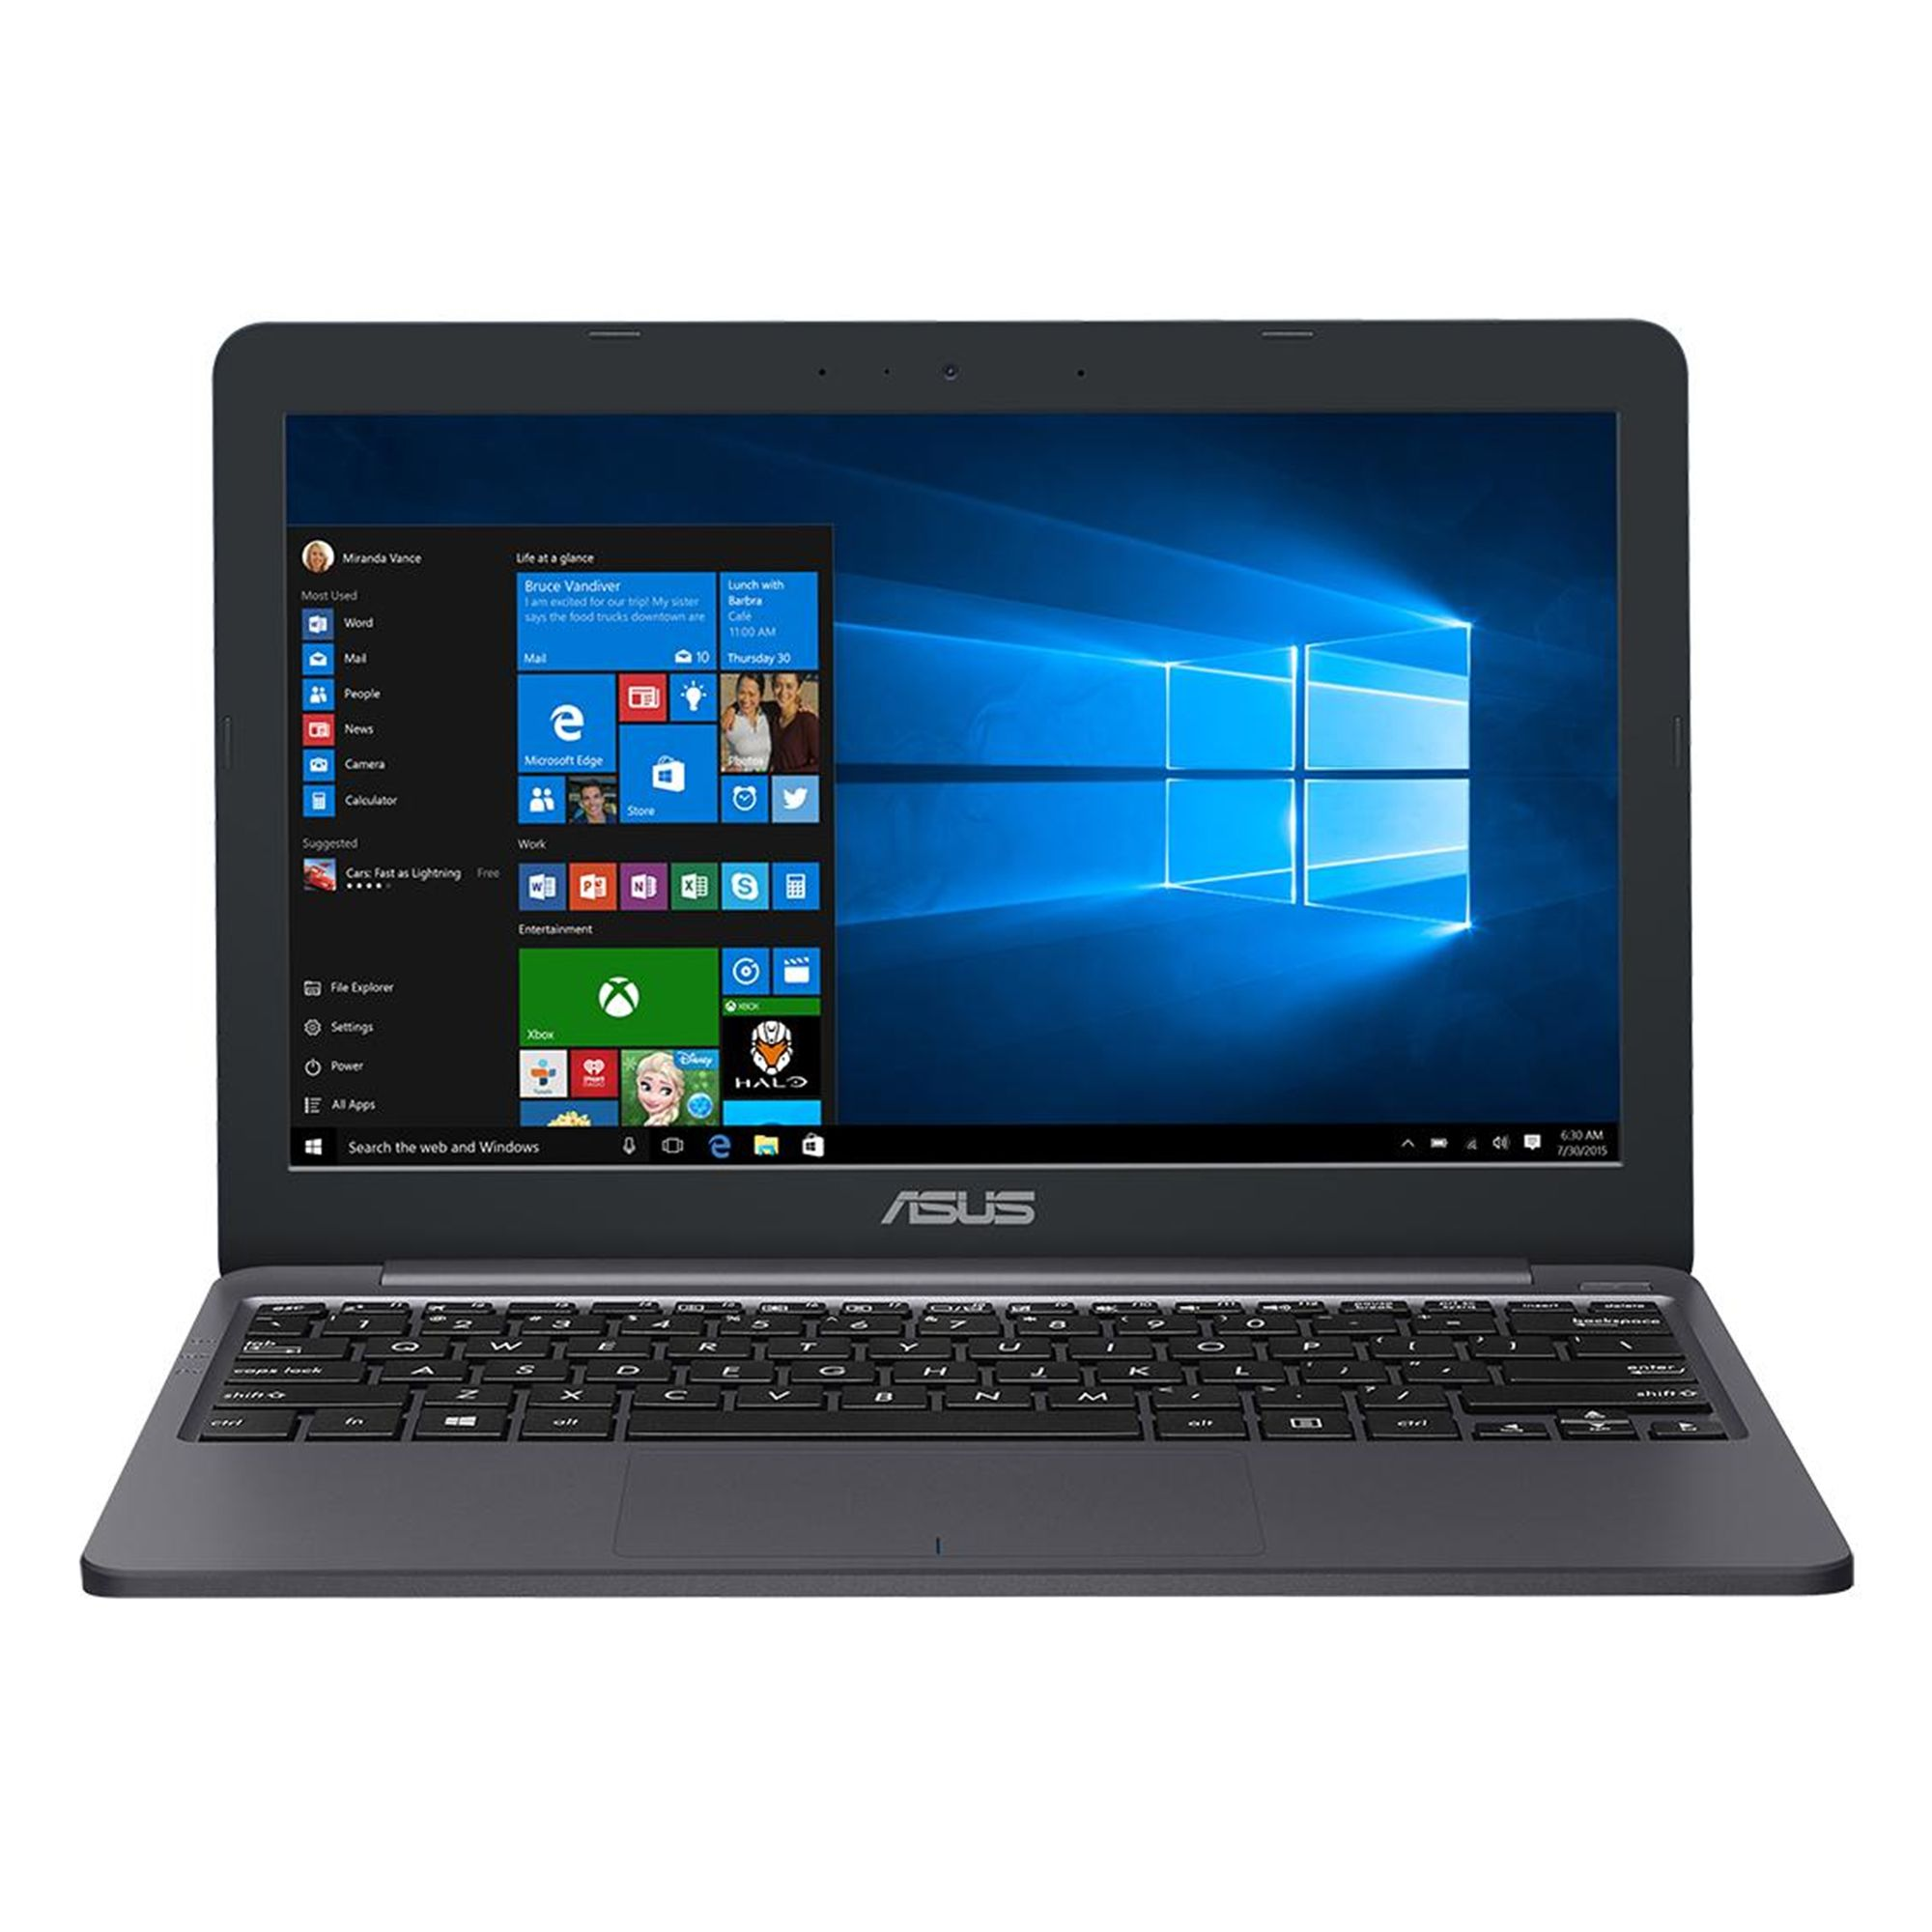 Ultrabook Asus VivoBook E203NA 11.6 HD Intel Celeron N3350 RAM 4GB eMMC 32GB Windows 10 Home Gri